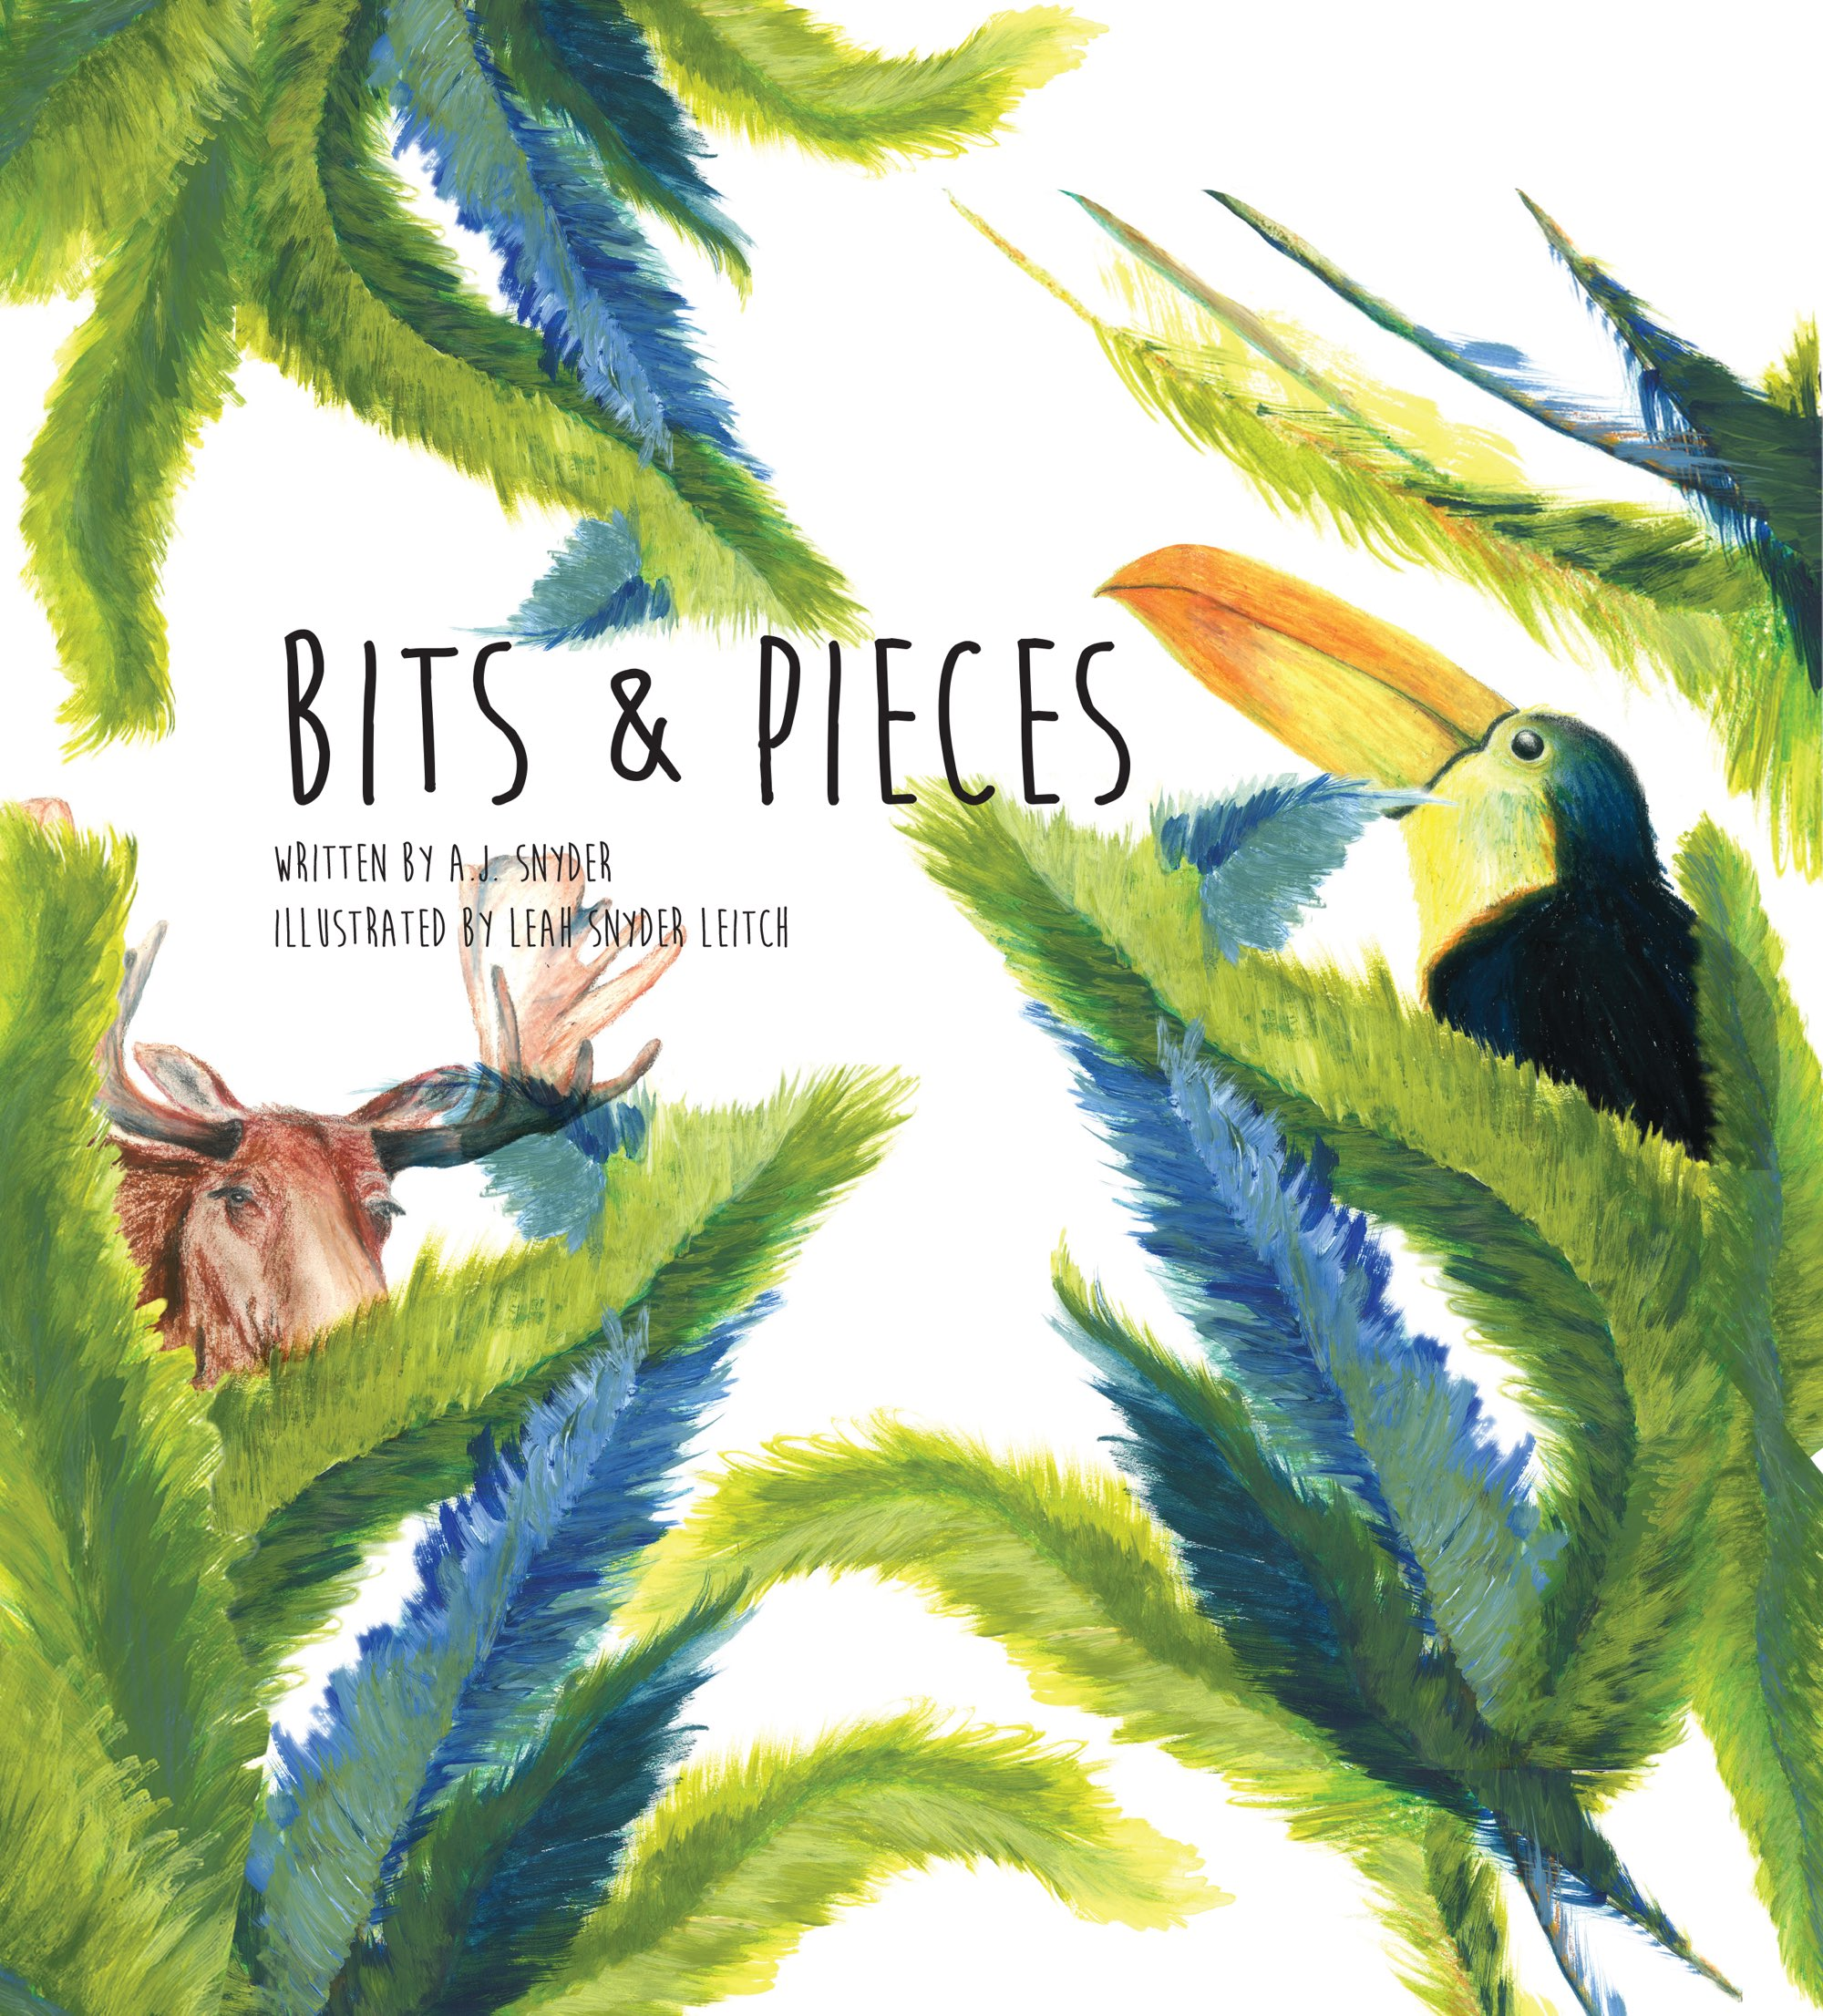 Bits & Pieces,by A.J. Snyder and illustrated by Leah Snyder Leitch.